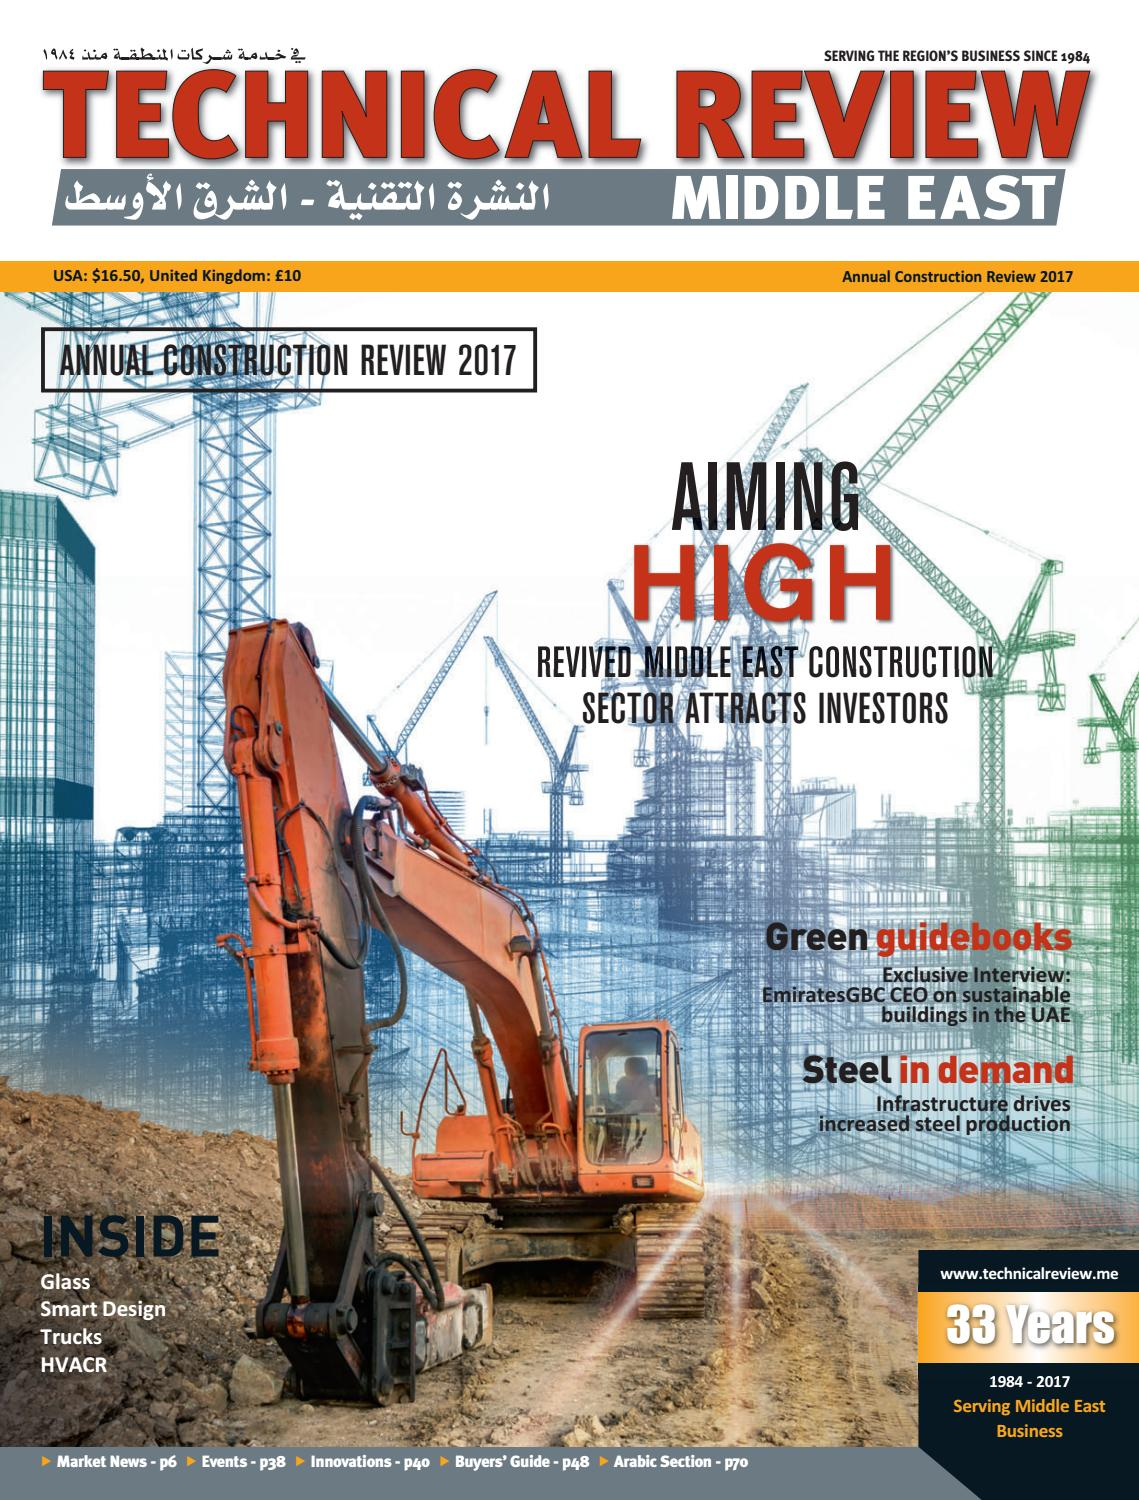 Techincal Review Middle East construction 2017 by Alain Charles